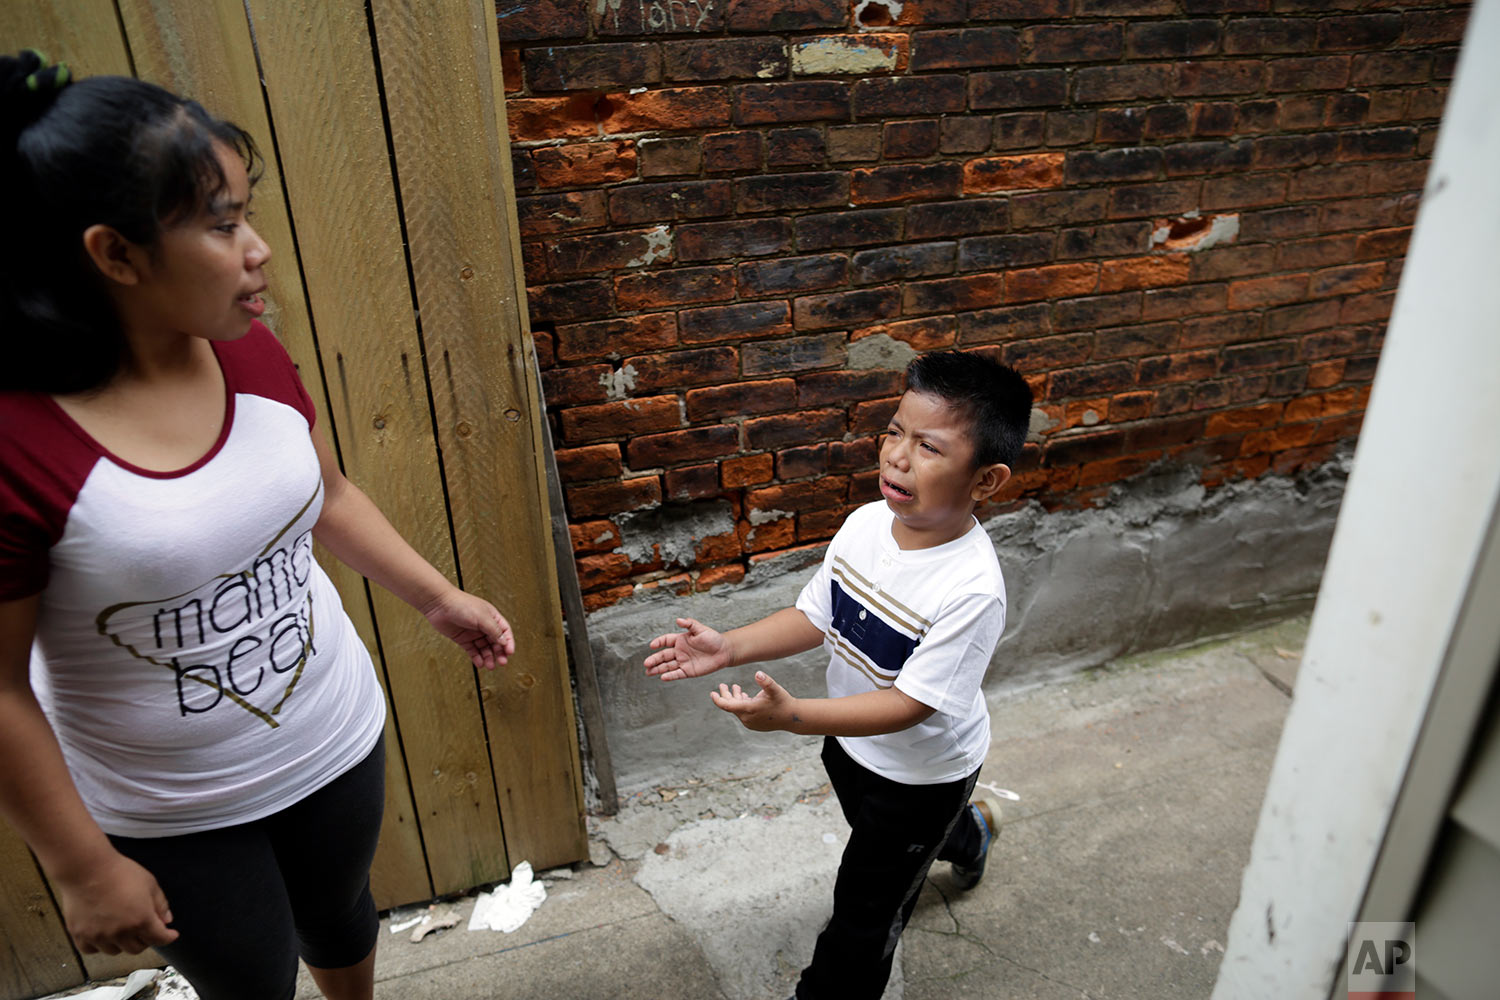 Carmelinda Perez tries to sooth her crying son, Franco, after he ran out of the house looking for his father in Florence, Ky. (AP Photo/Gregory Bull)